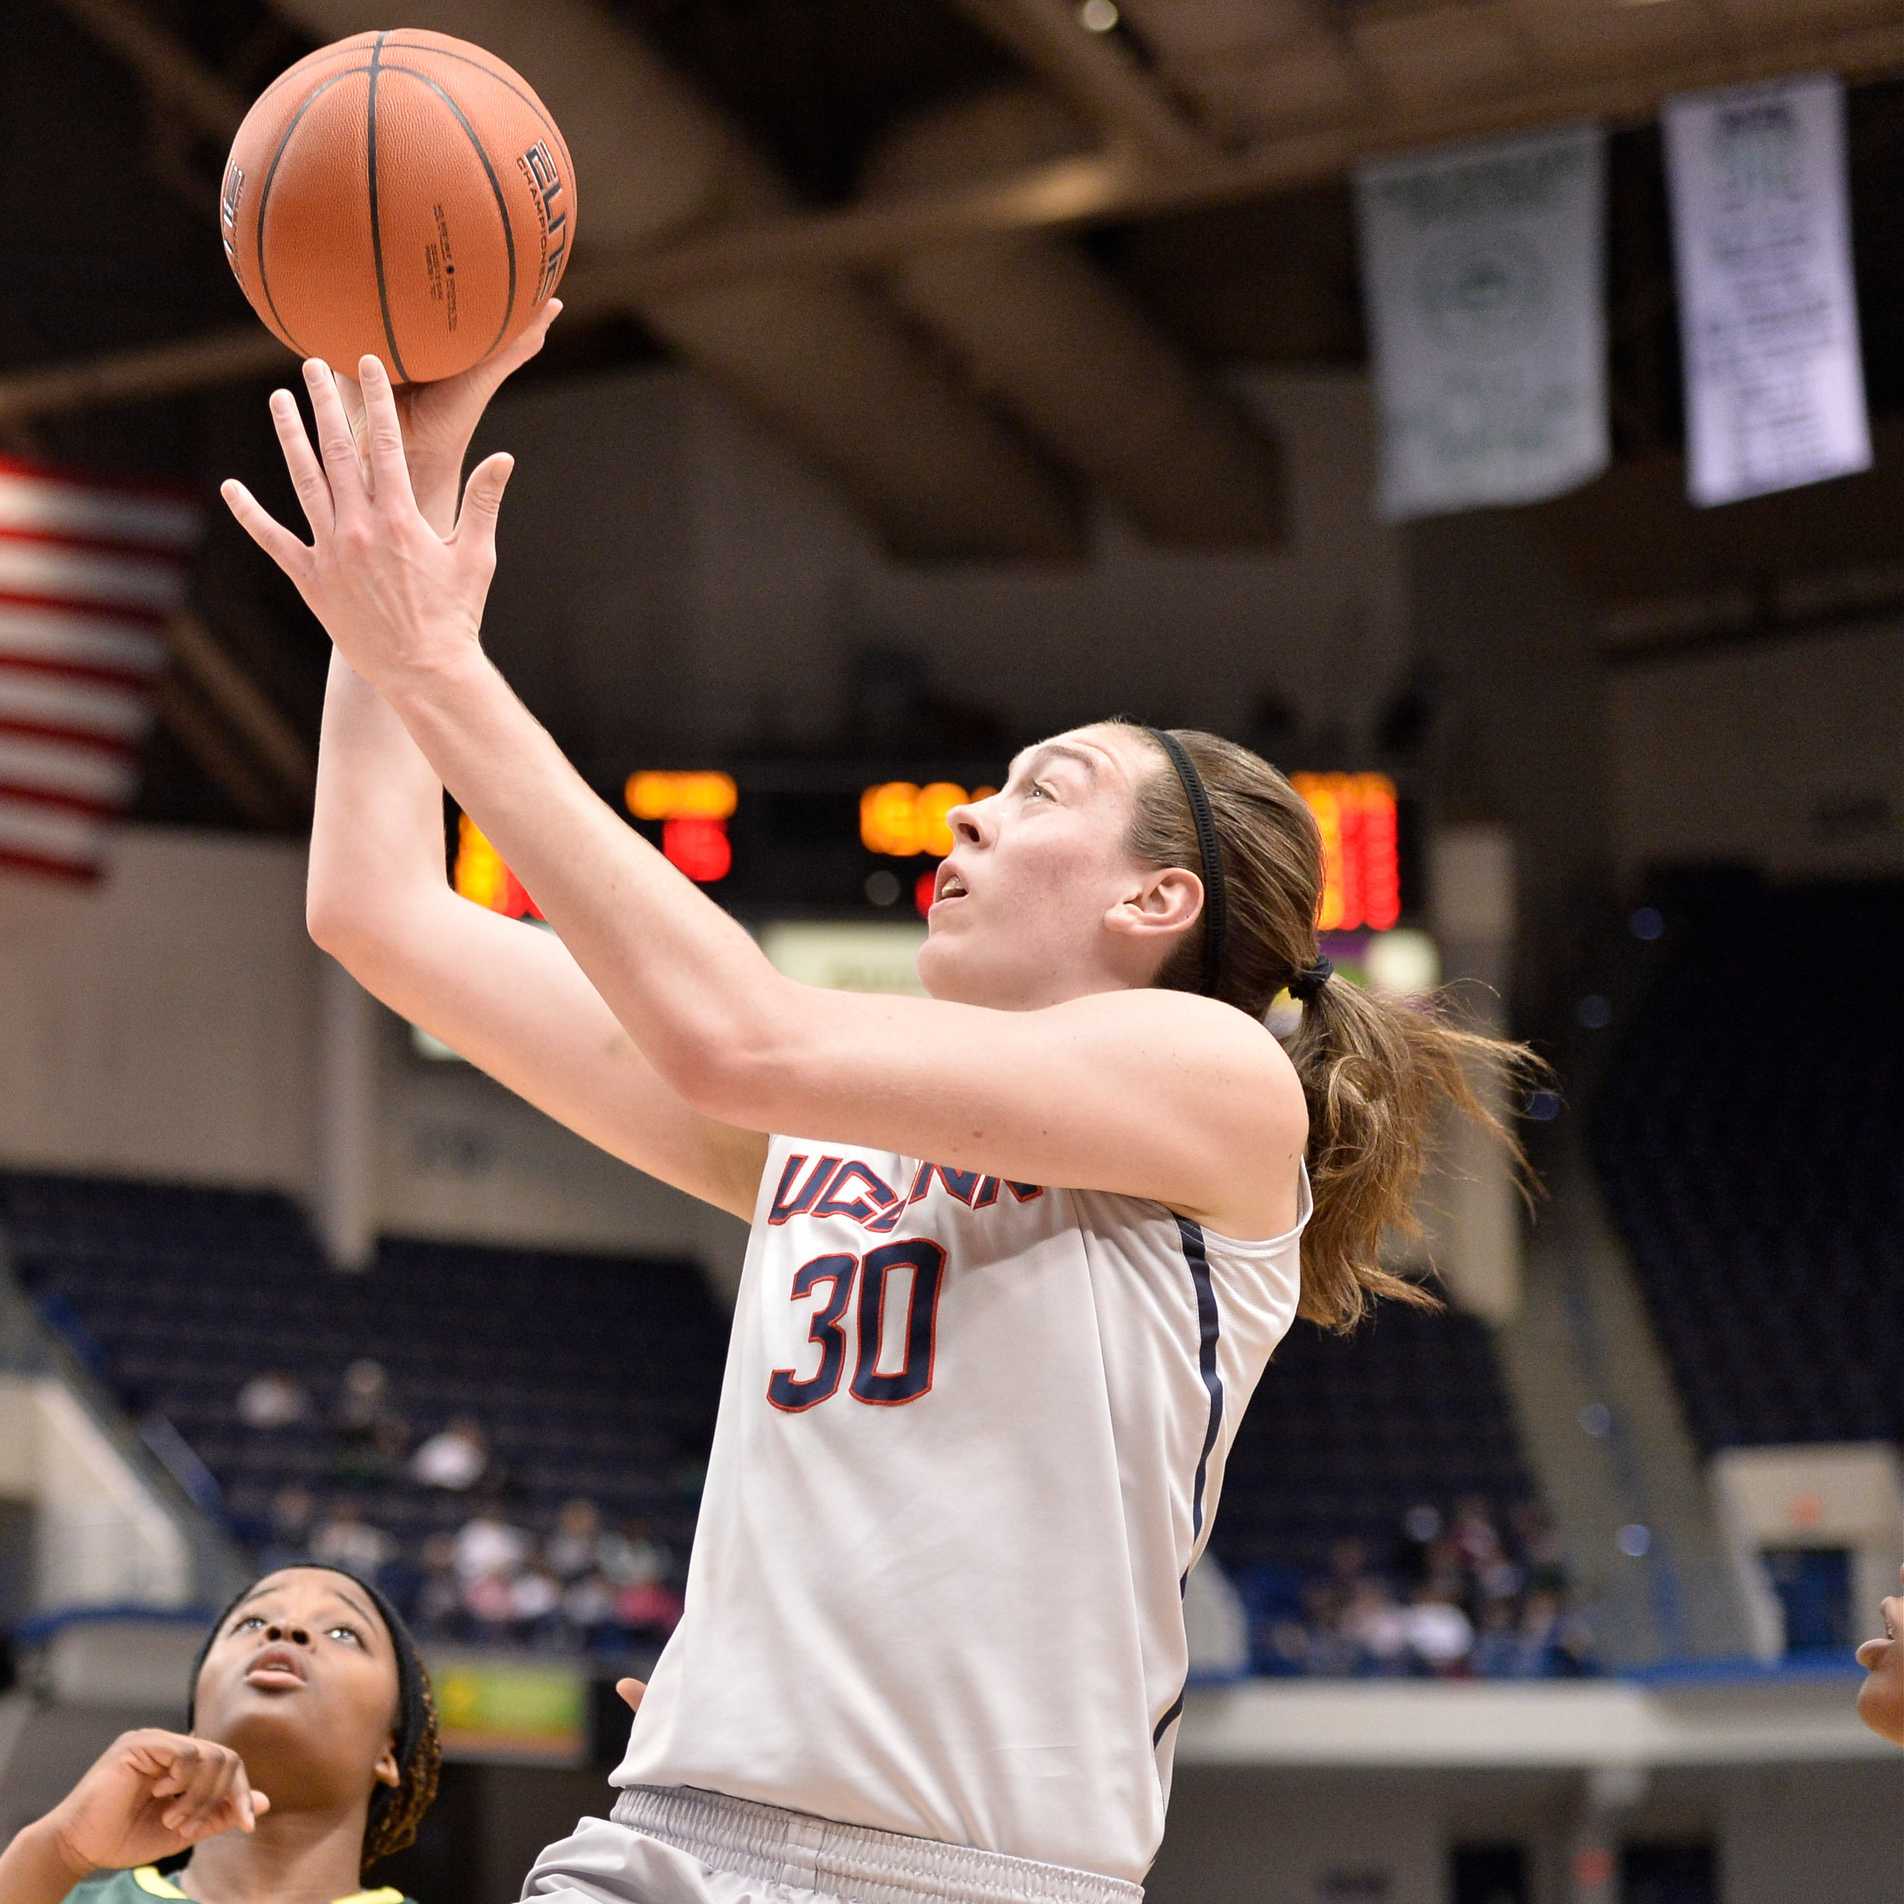 Breanna Stewart is a gifted sophomore basketball star at the University of Connecticut. Frank Deford wonders if you've ever heard of her.